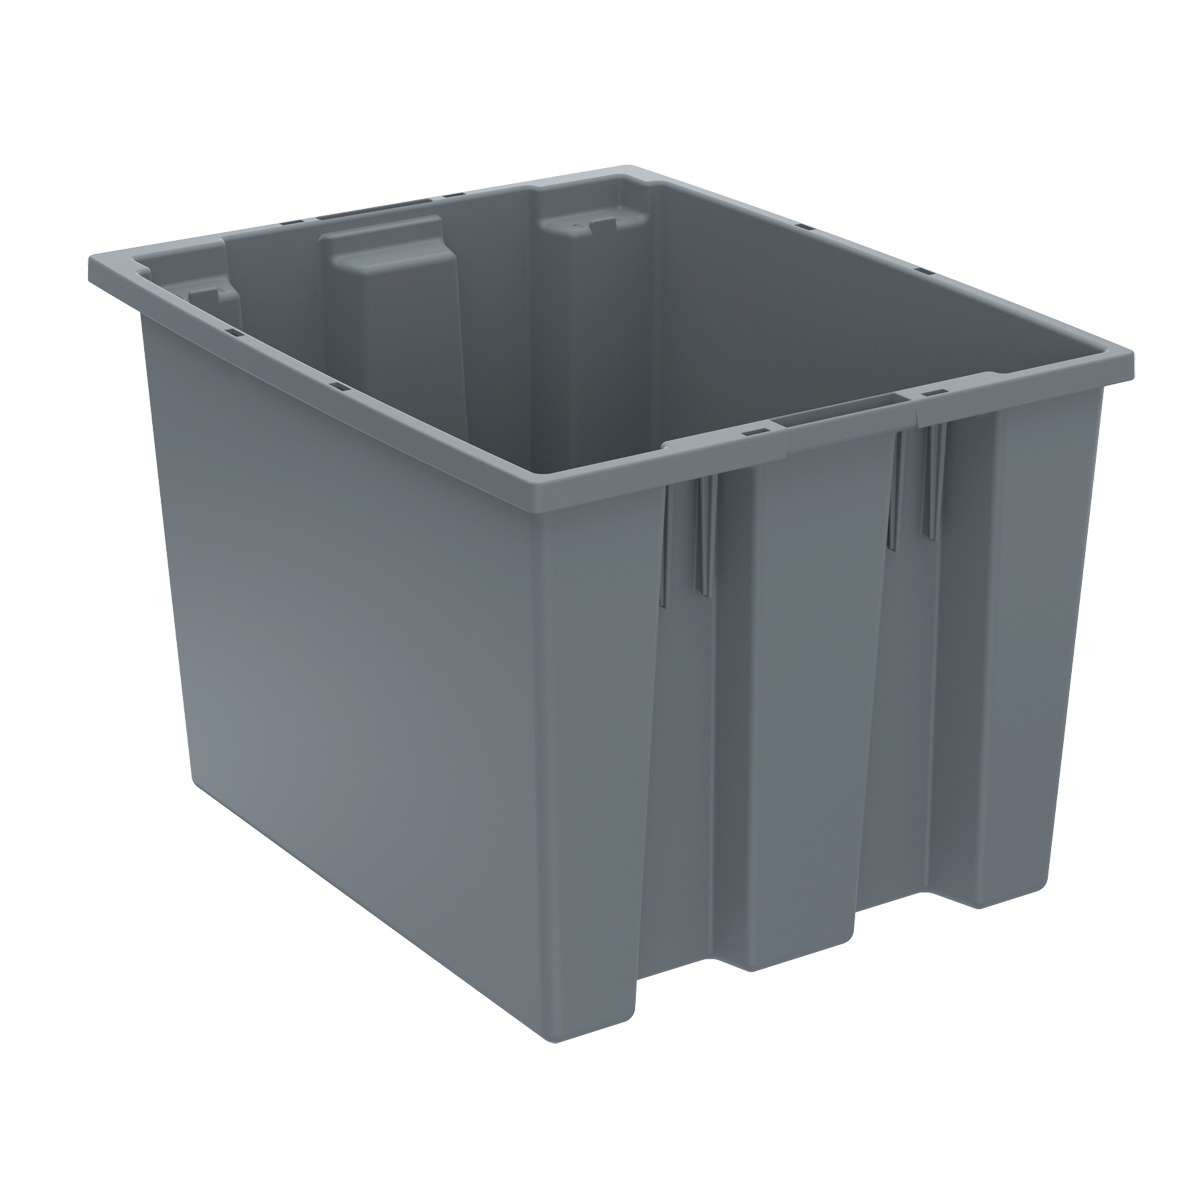 Nest & Stack Tote 19-1/2 x 15-1/2 x 13, Gray (35195GREY).  This item sold in carton quantities of 6.